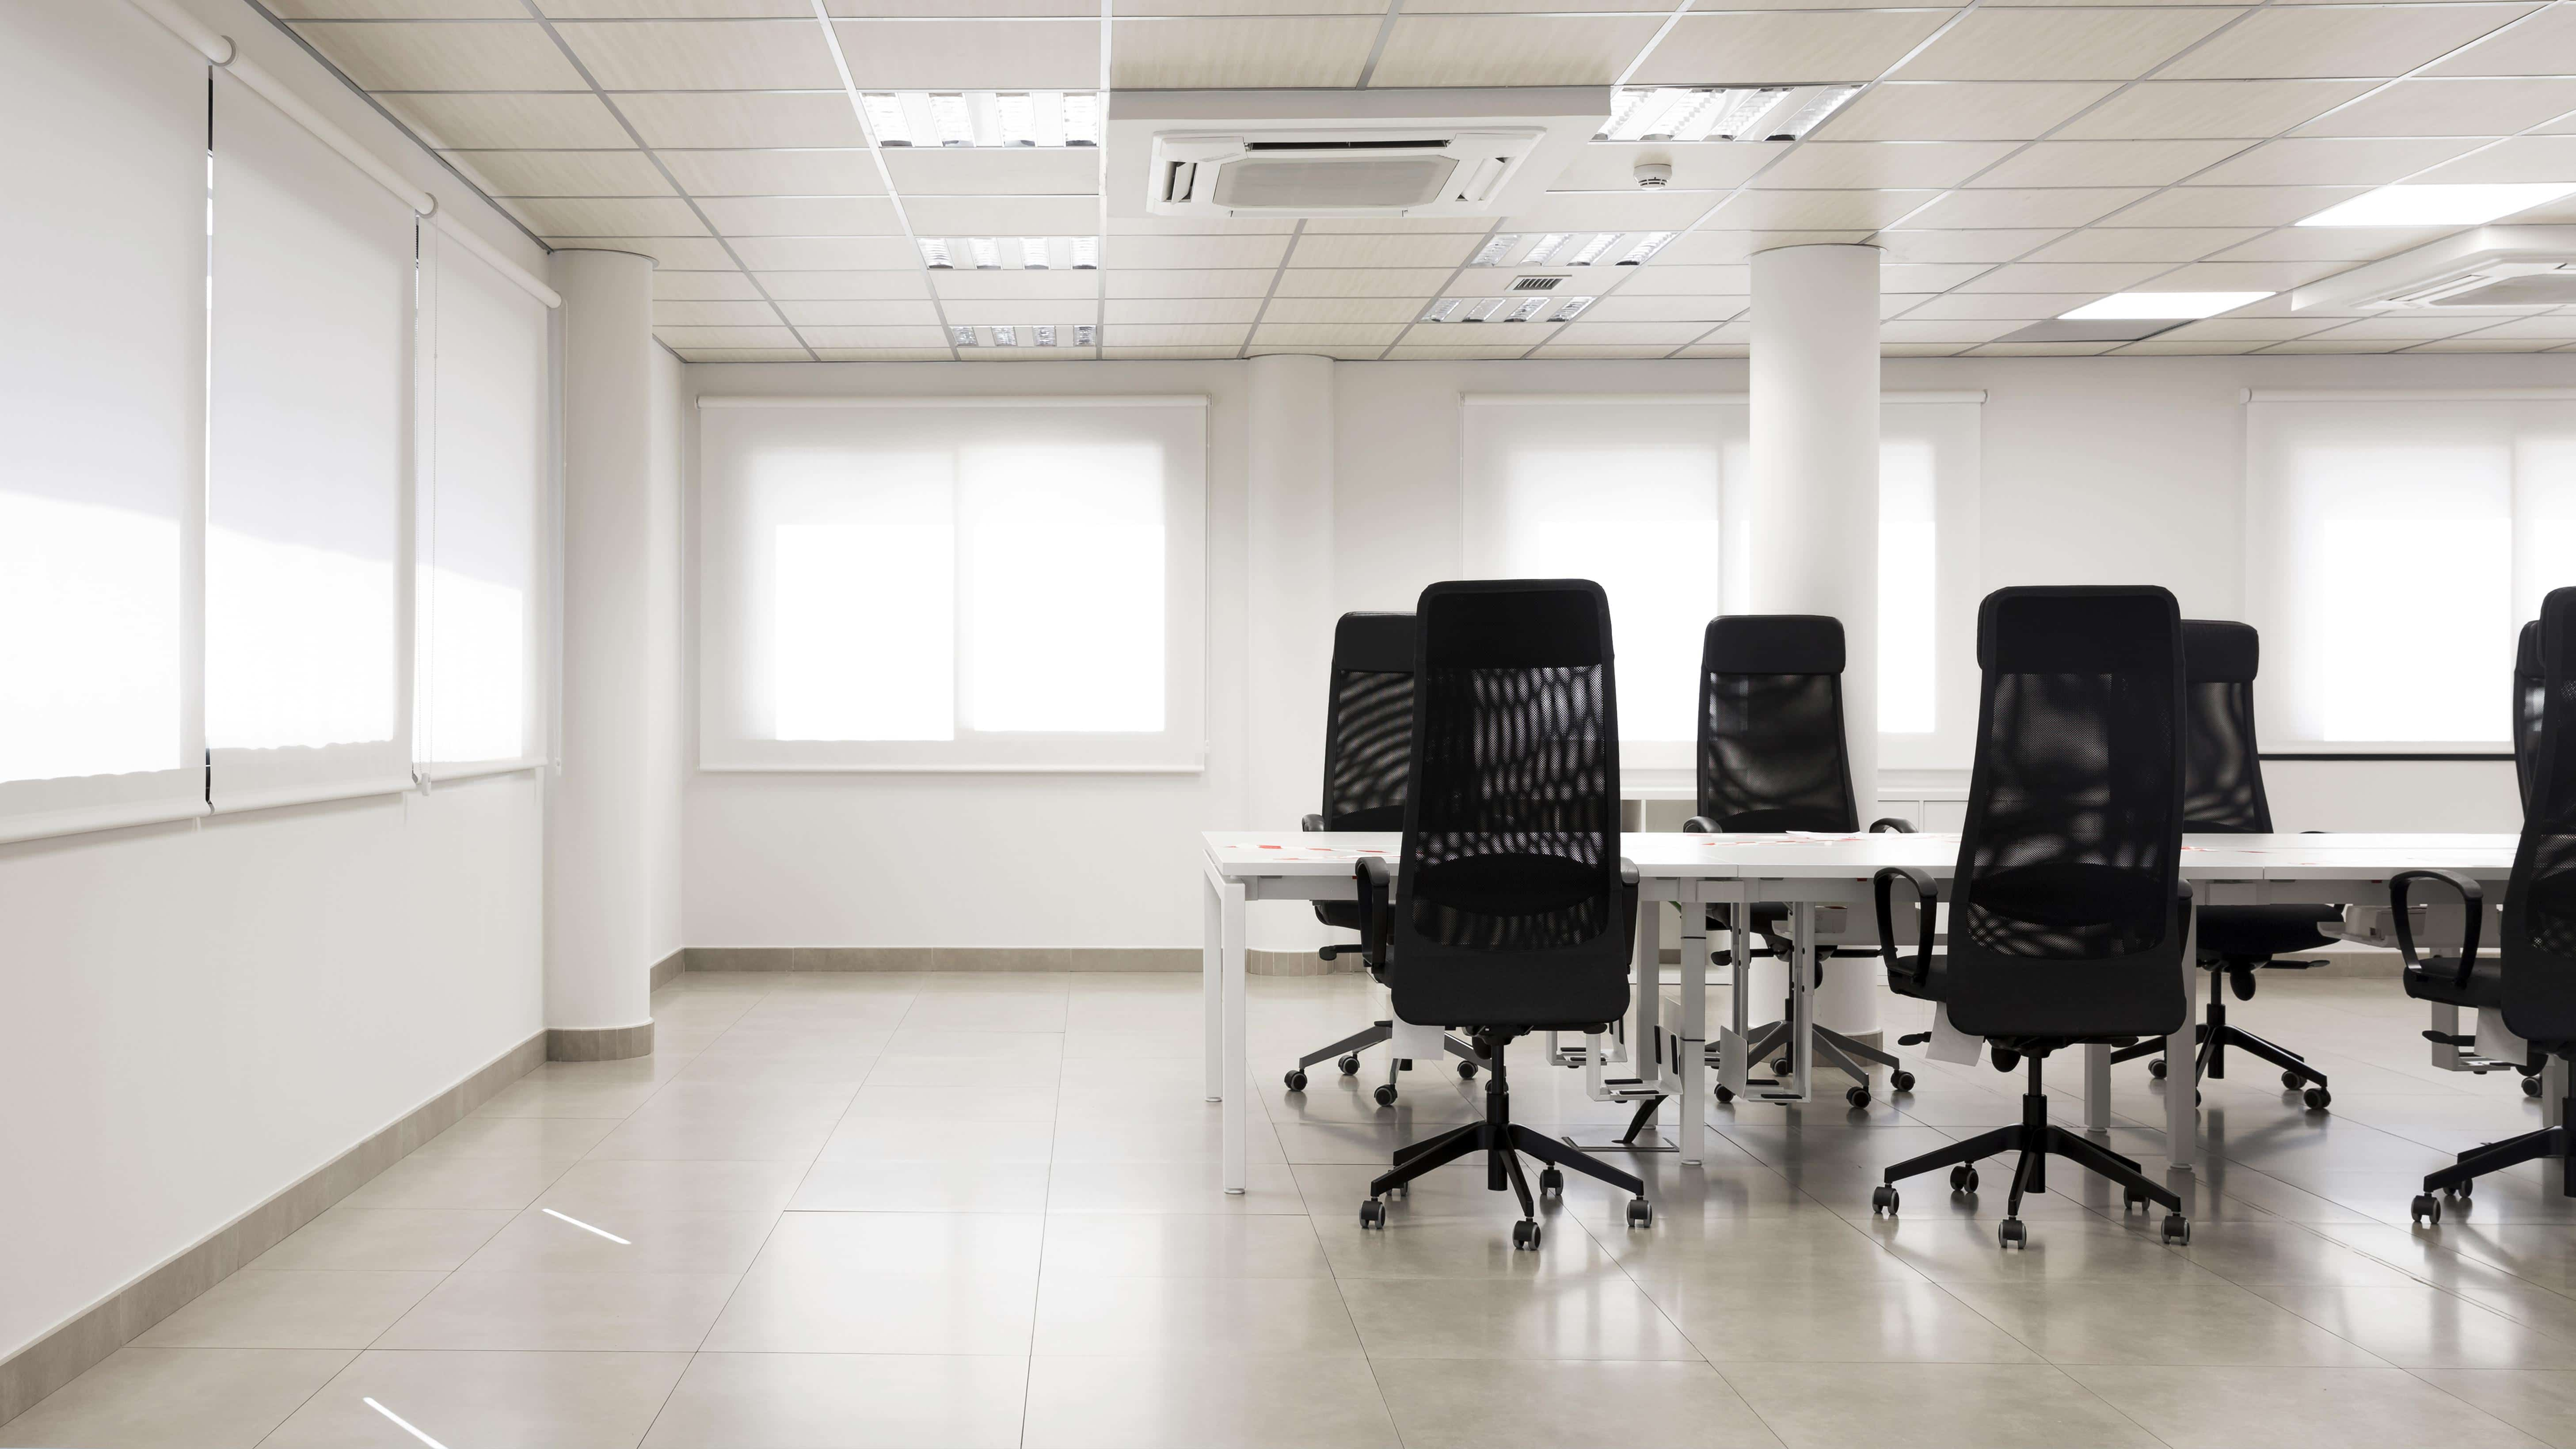 Serviced Offices A Clean and Productive Workplace in the Pandemic